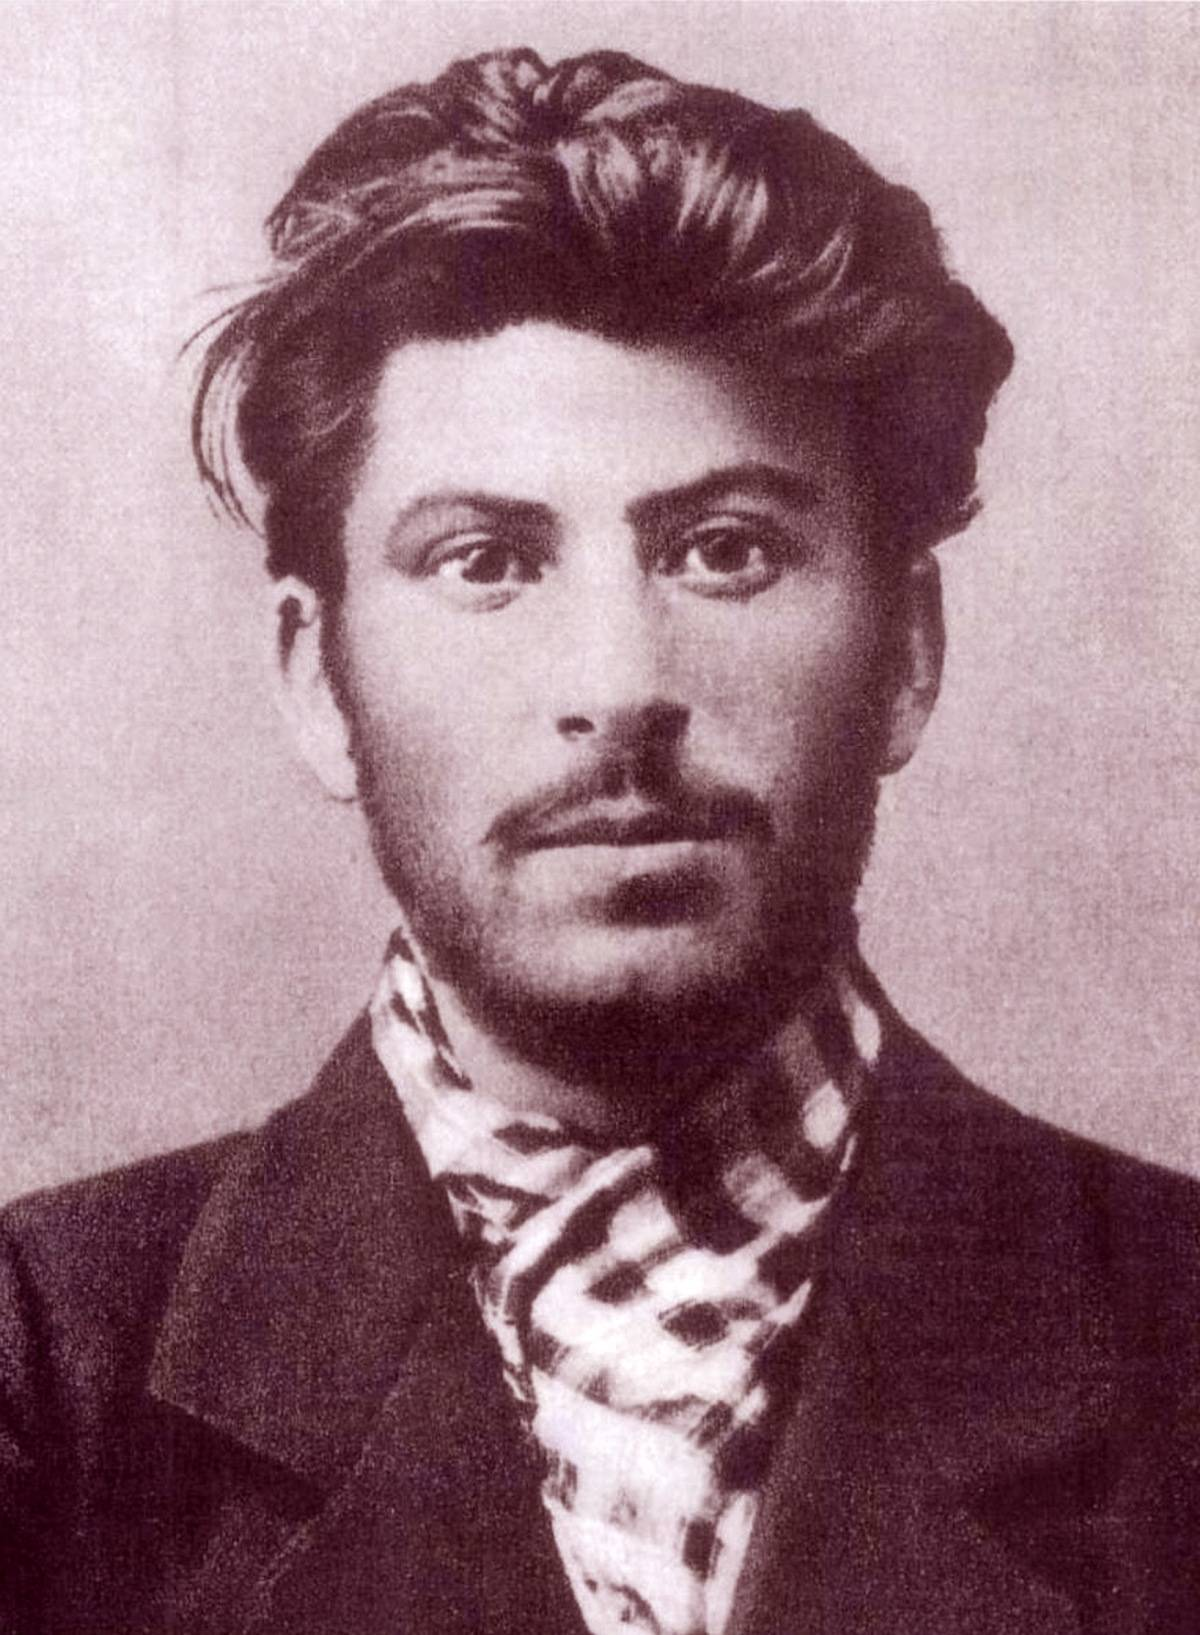 Josef Stalin is pictured in 1901 at age 23.